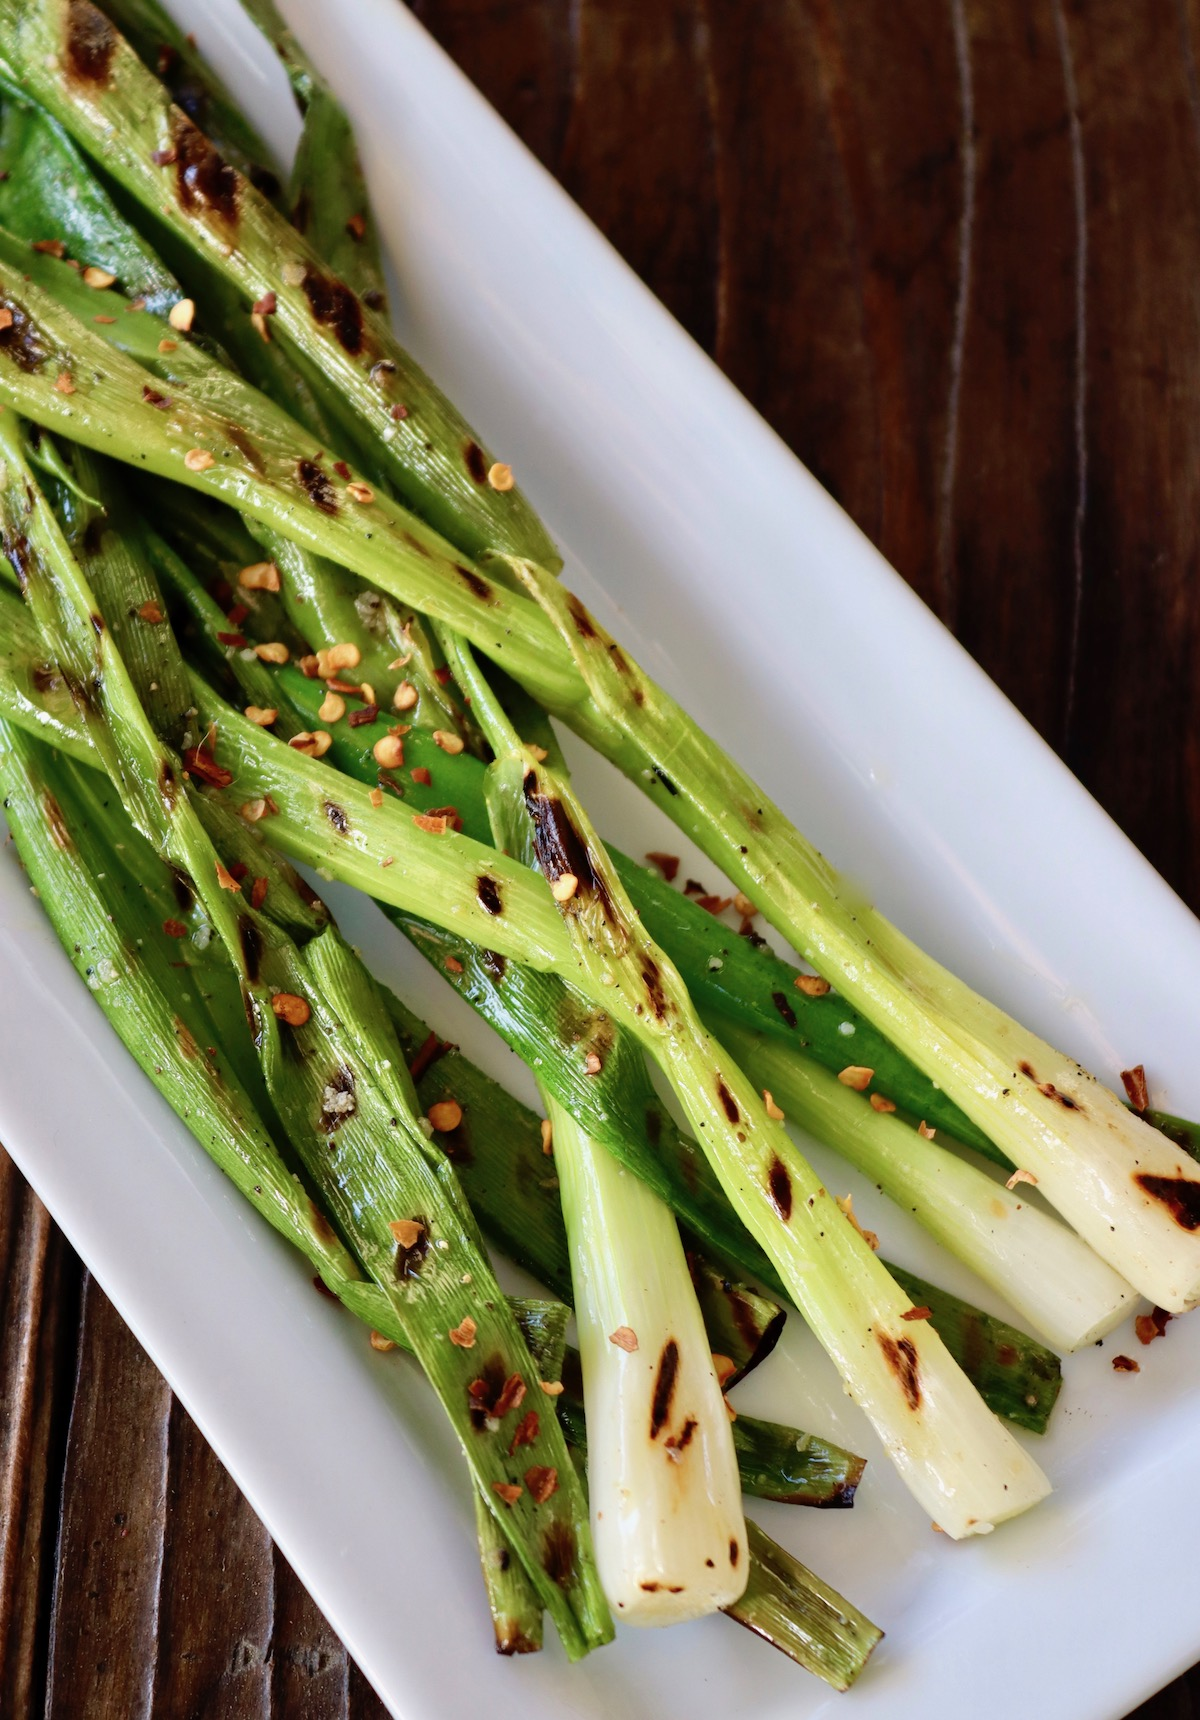 Grilled Green Onions on a narrow white plate